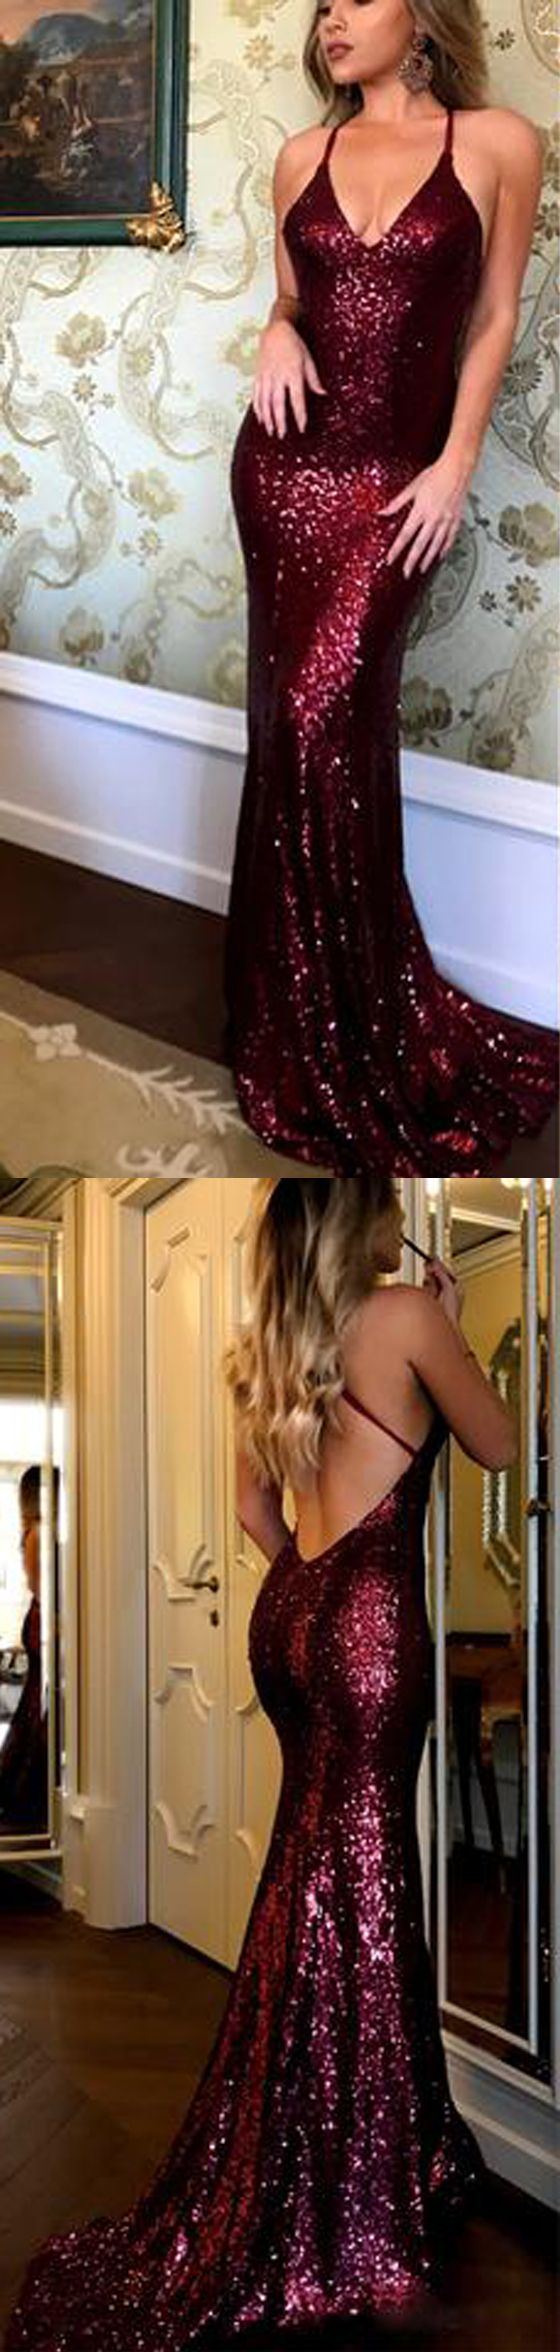 Burgundy Sequin Cheap Shinning Sexy Open Back Long Prom Dresses, PM0783 #promdress #longpromdress